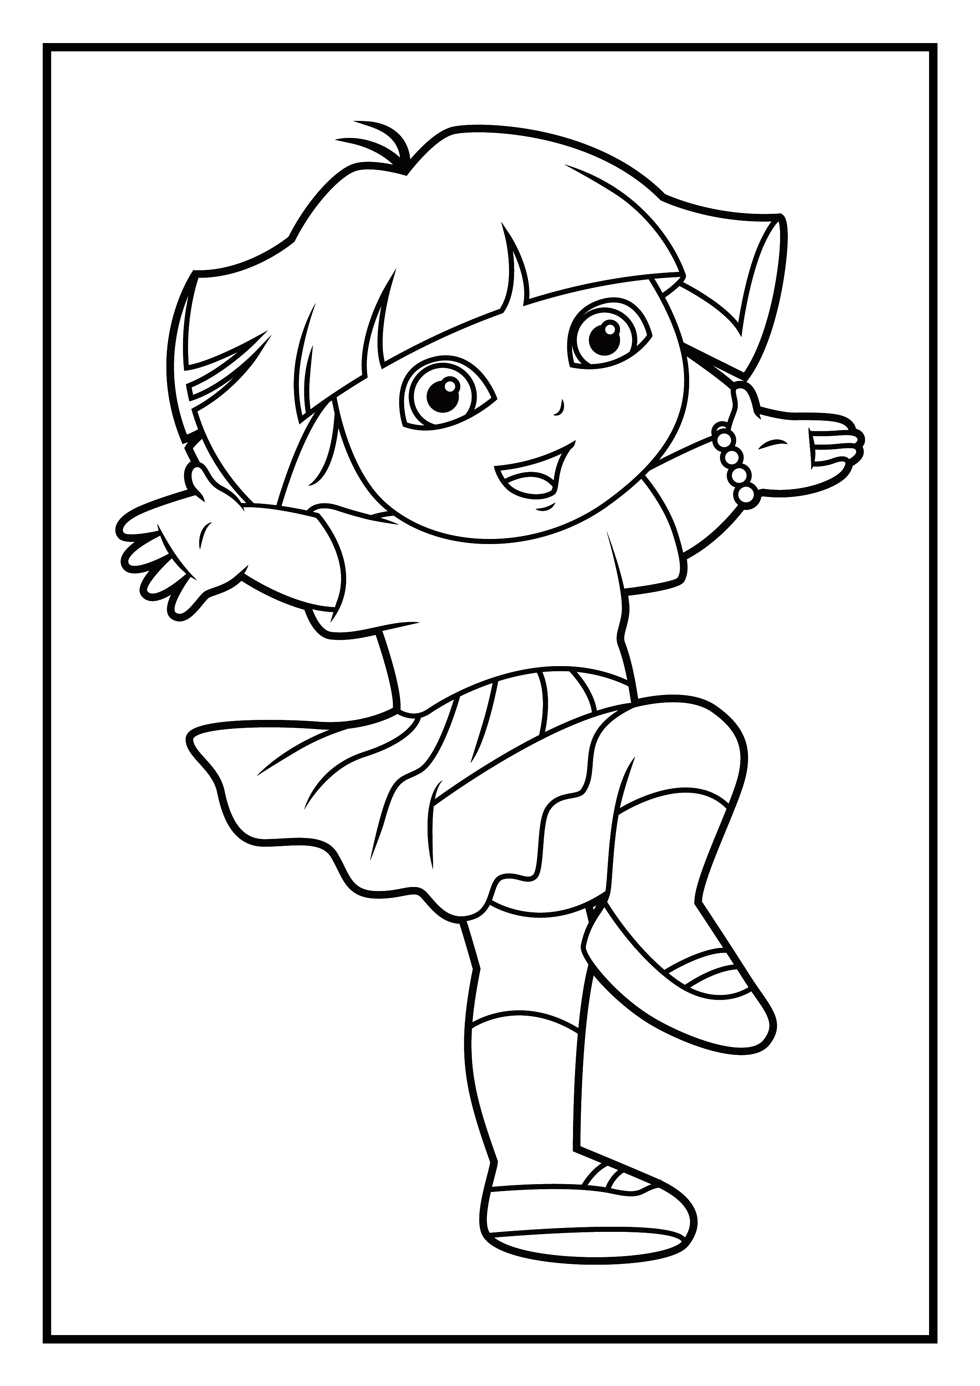 coloring pages with dora - photo#18